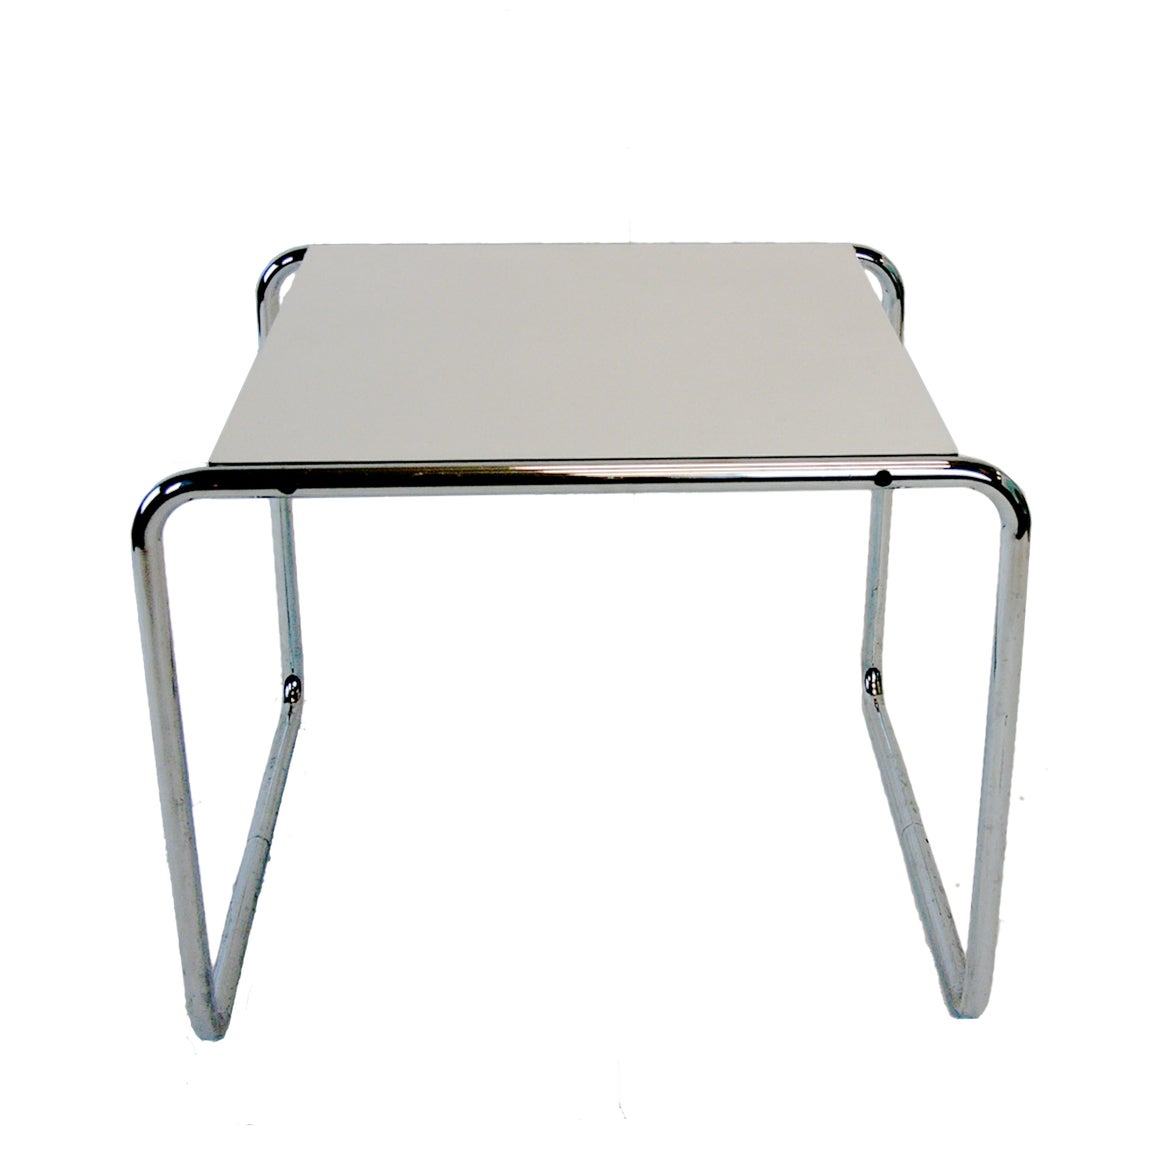 Marcel breuer laccio end table by gavina at 1stdibs marcel breuer laccio end table by gavina 3 geotapseo Images